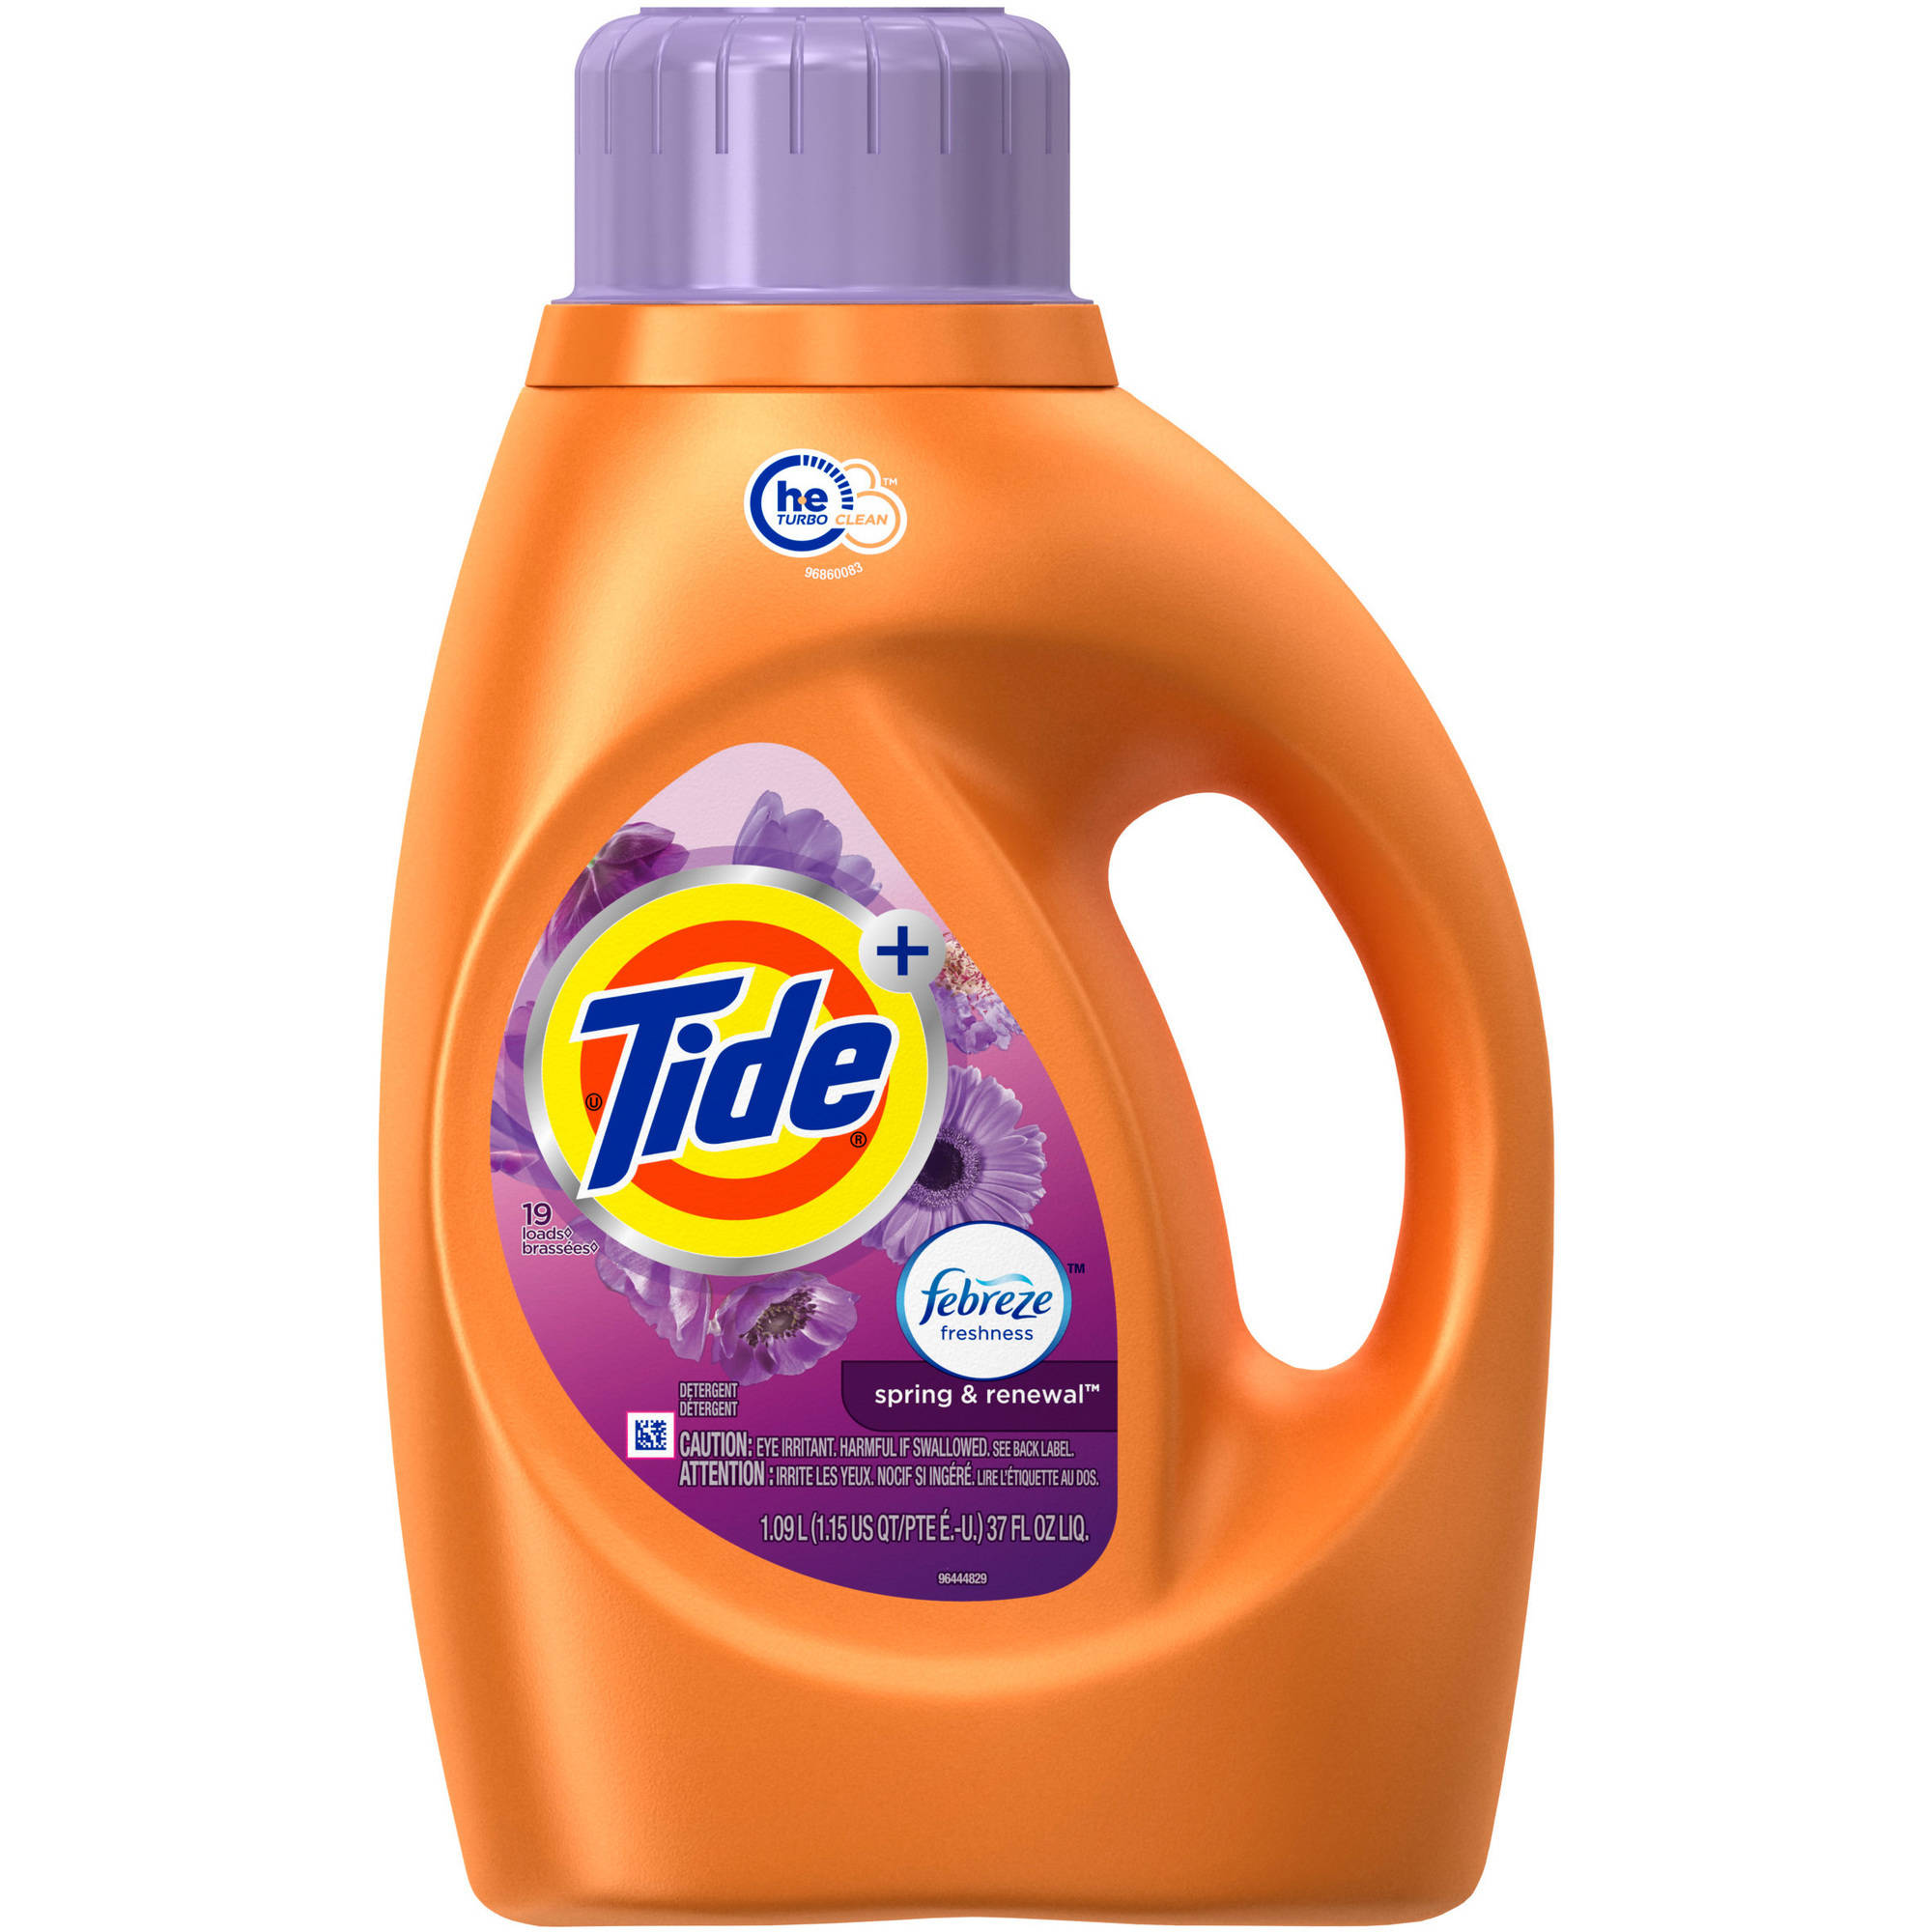 Tide Plus Febreze Freshness Spring and Renewal Scent Liquid Laundry Detergent, (Choose Your Size)